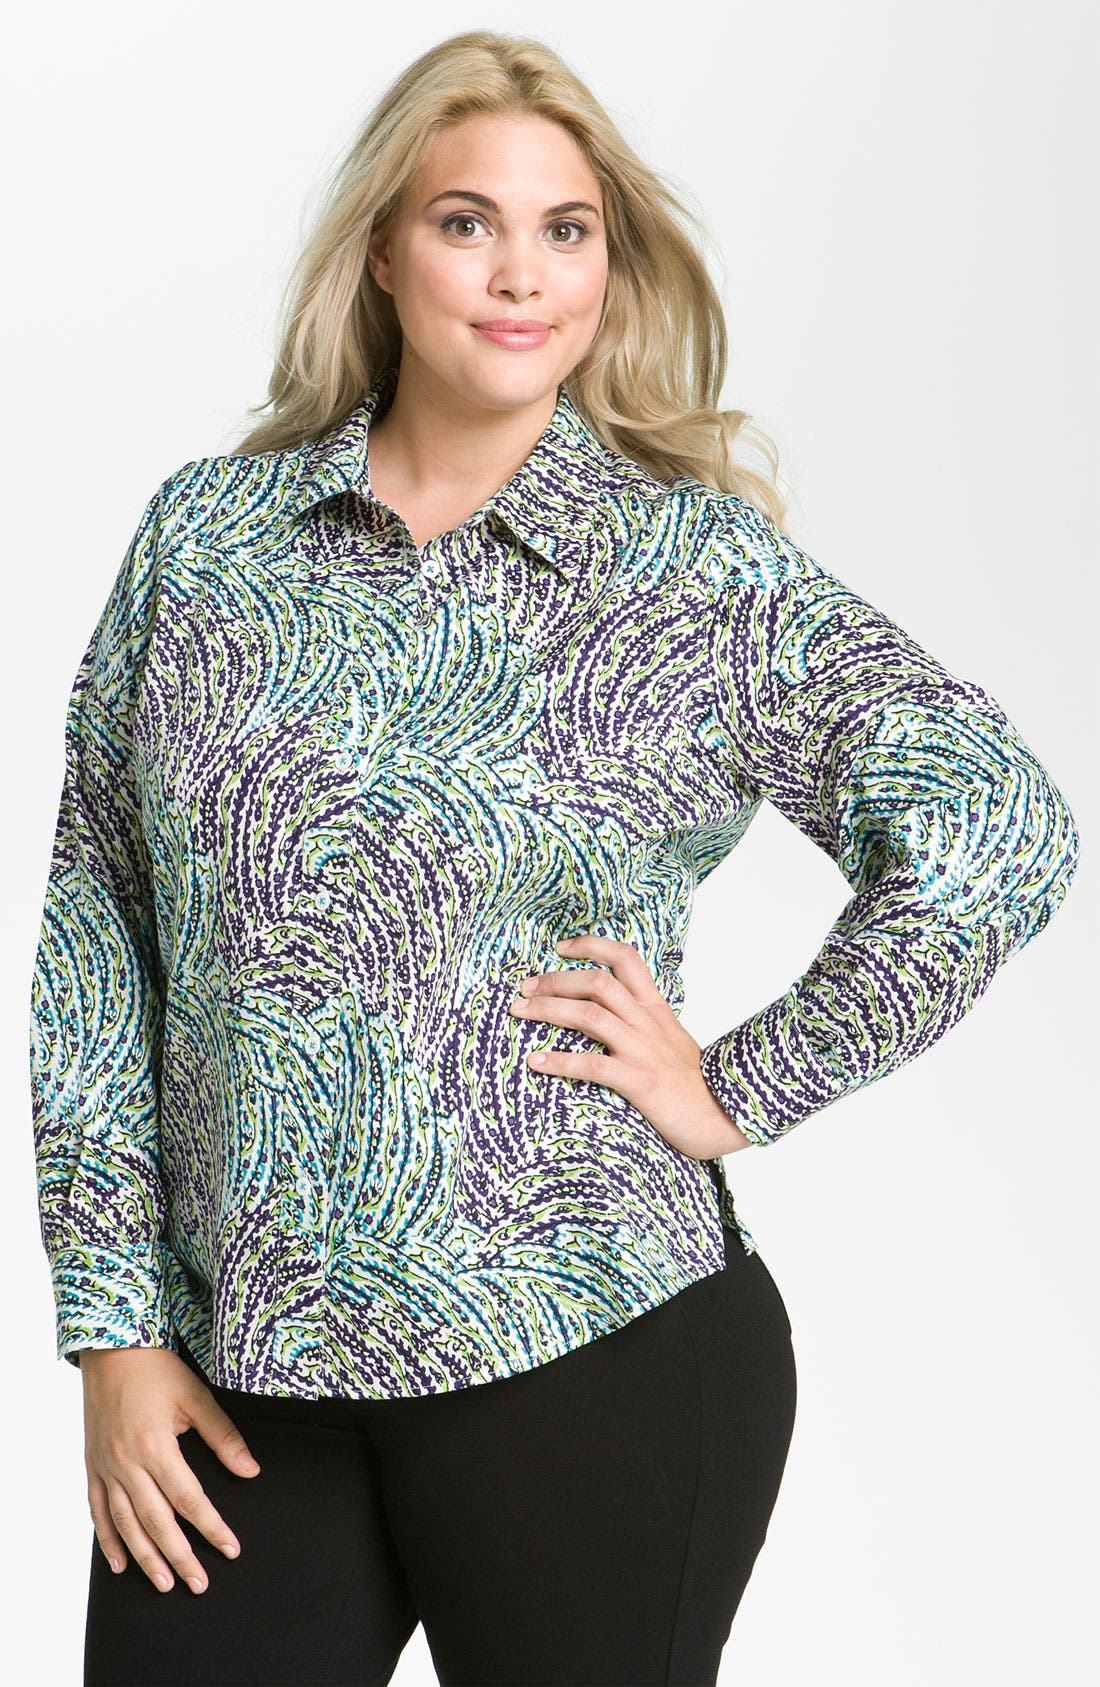 Alternate Image 1 Selected - Foxcroft 'Garden' Long Sleeve Shaped Shirt (Plus)